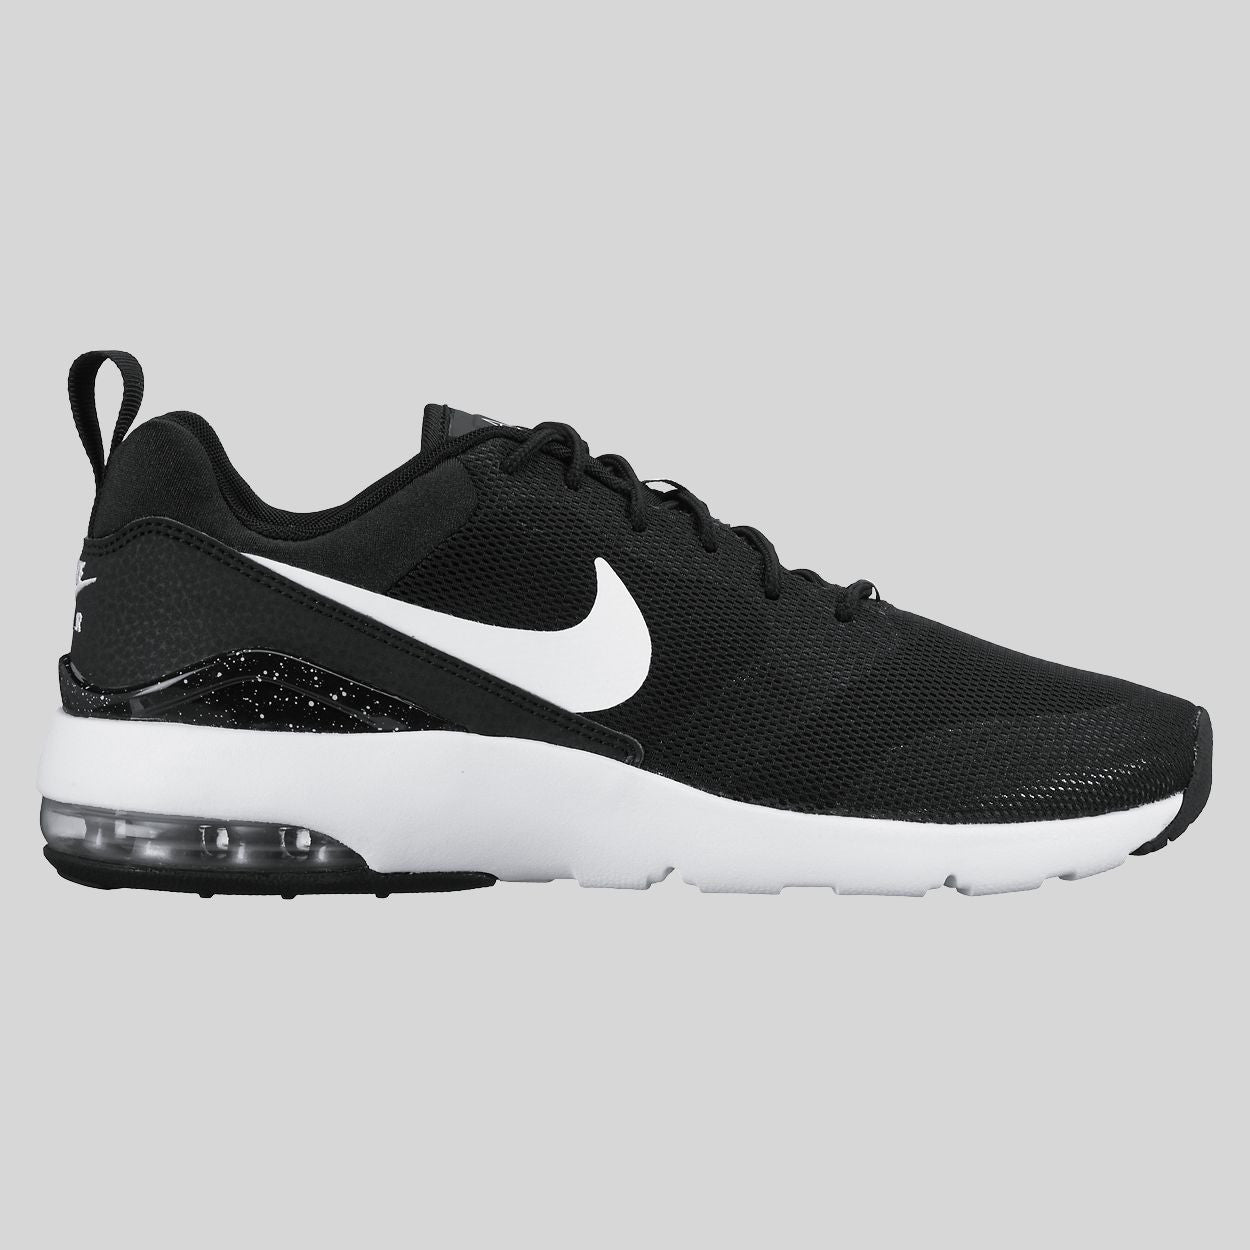 Nike Wmns Air Max Siren Black White Metallic Silver (749510-004)